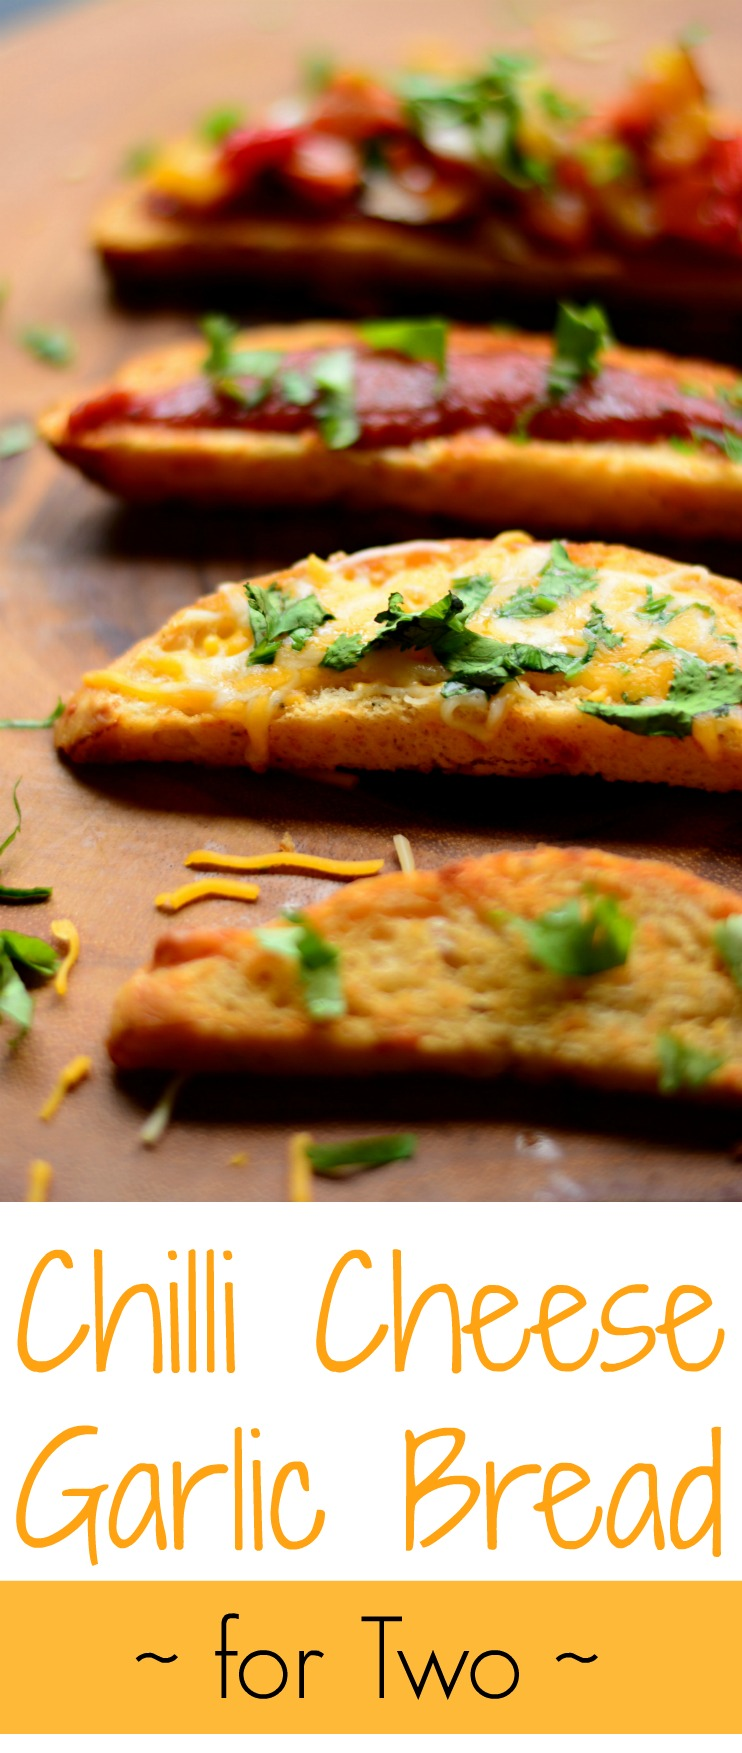 Chilli Cheese Garlic Bread For Two Pin